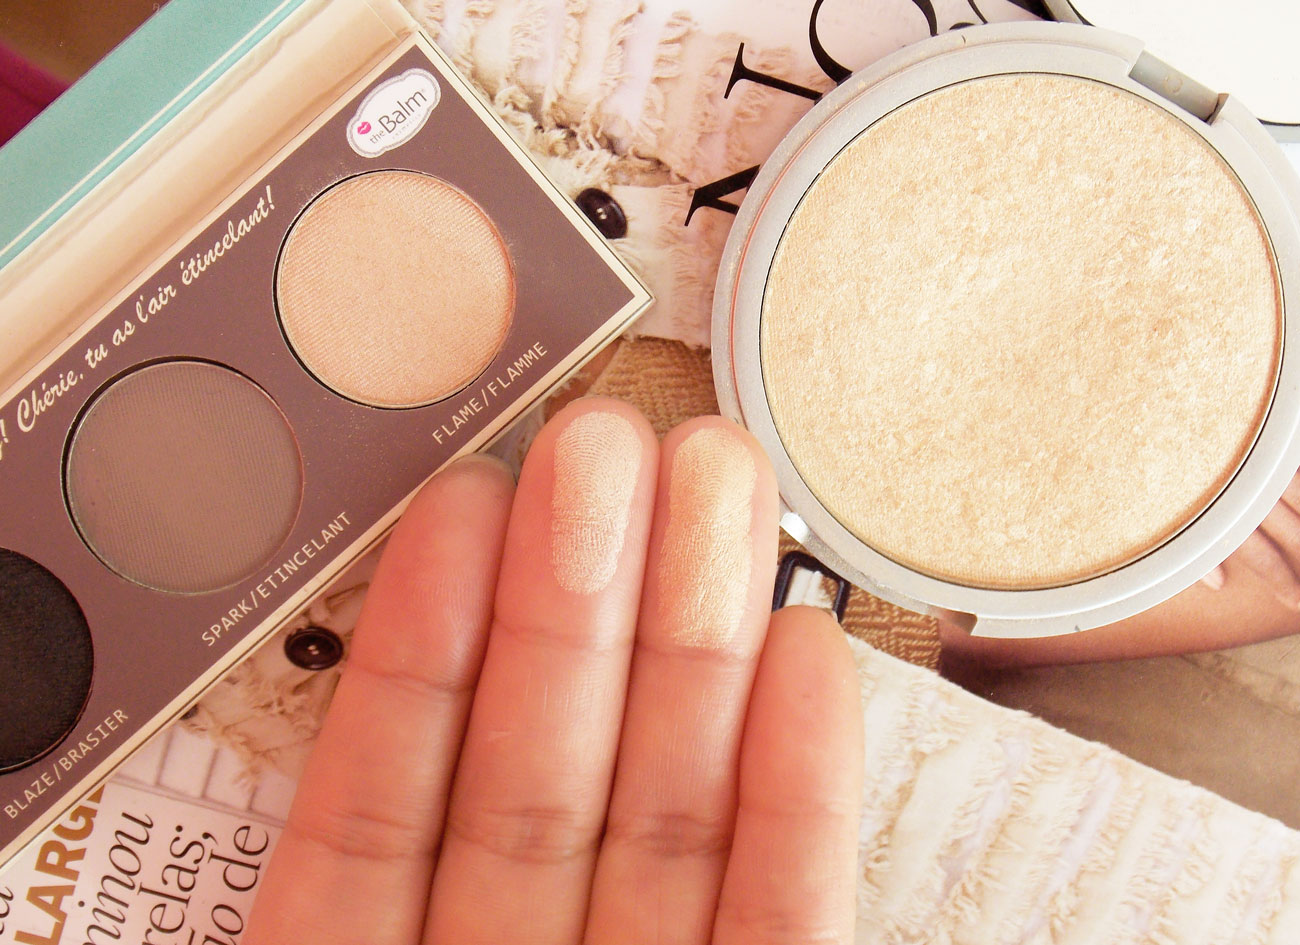 thebalm-SMOKE-BALM-REVIEW